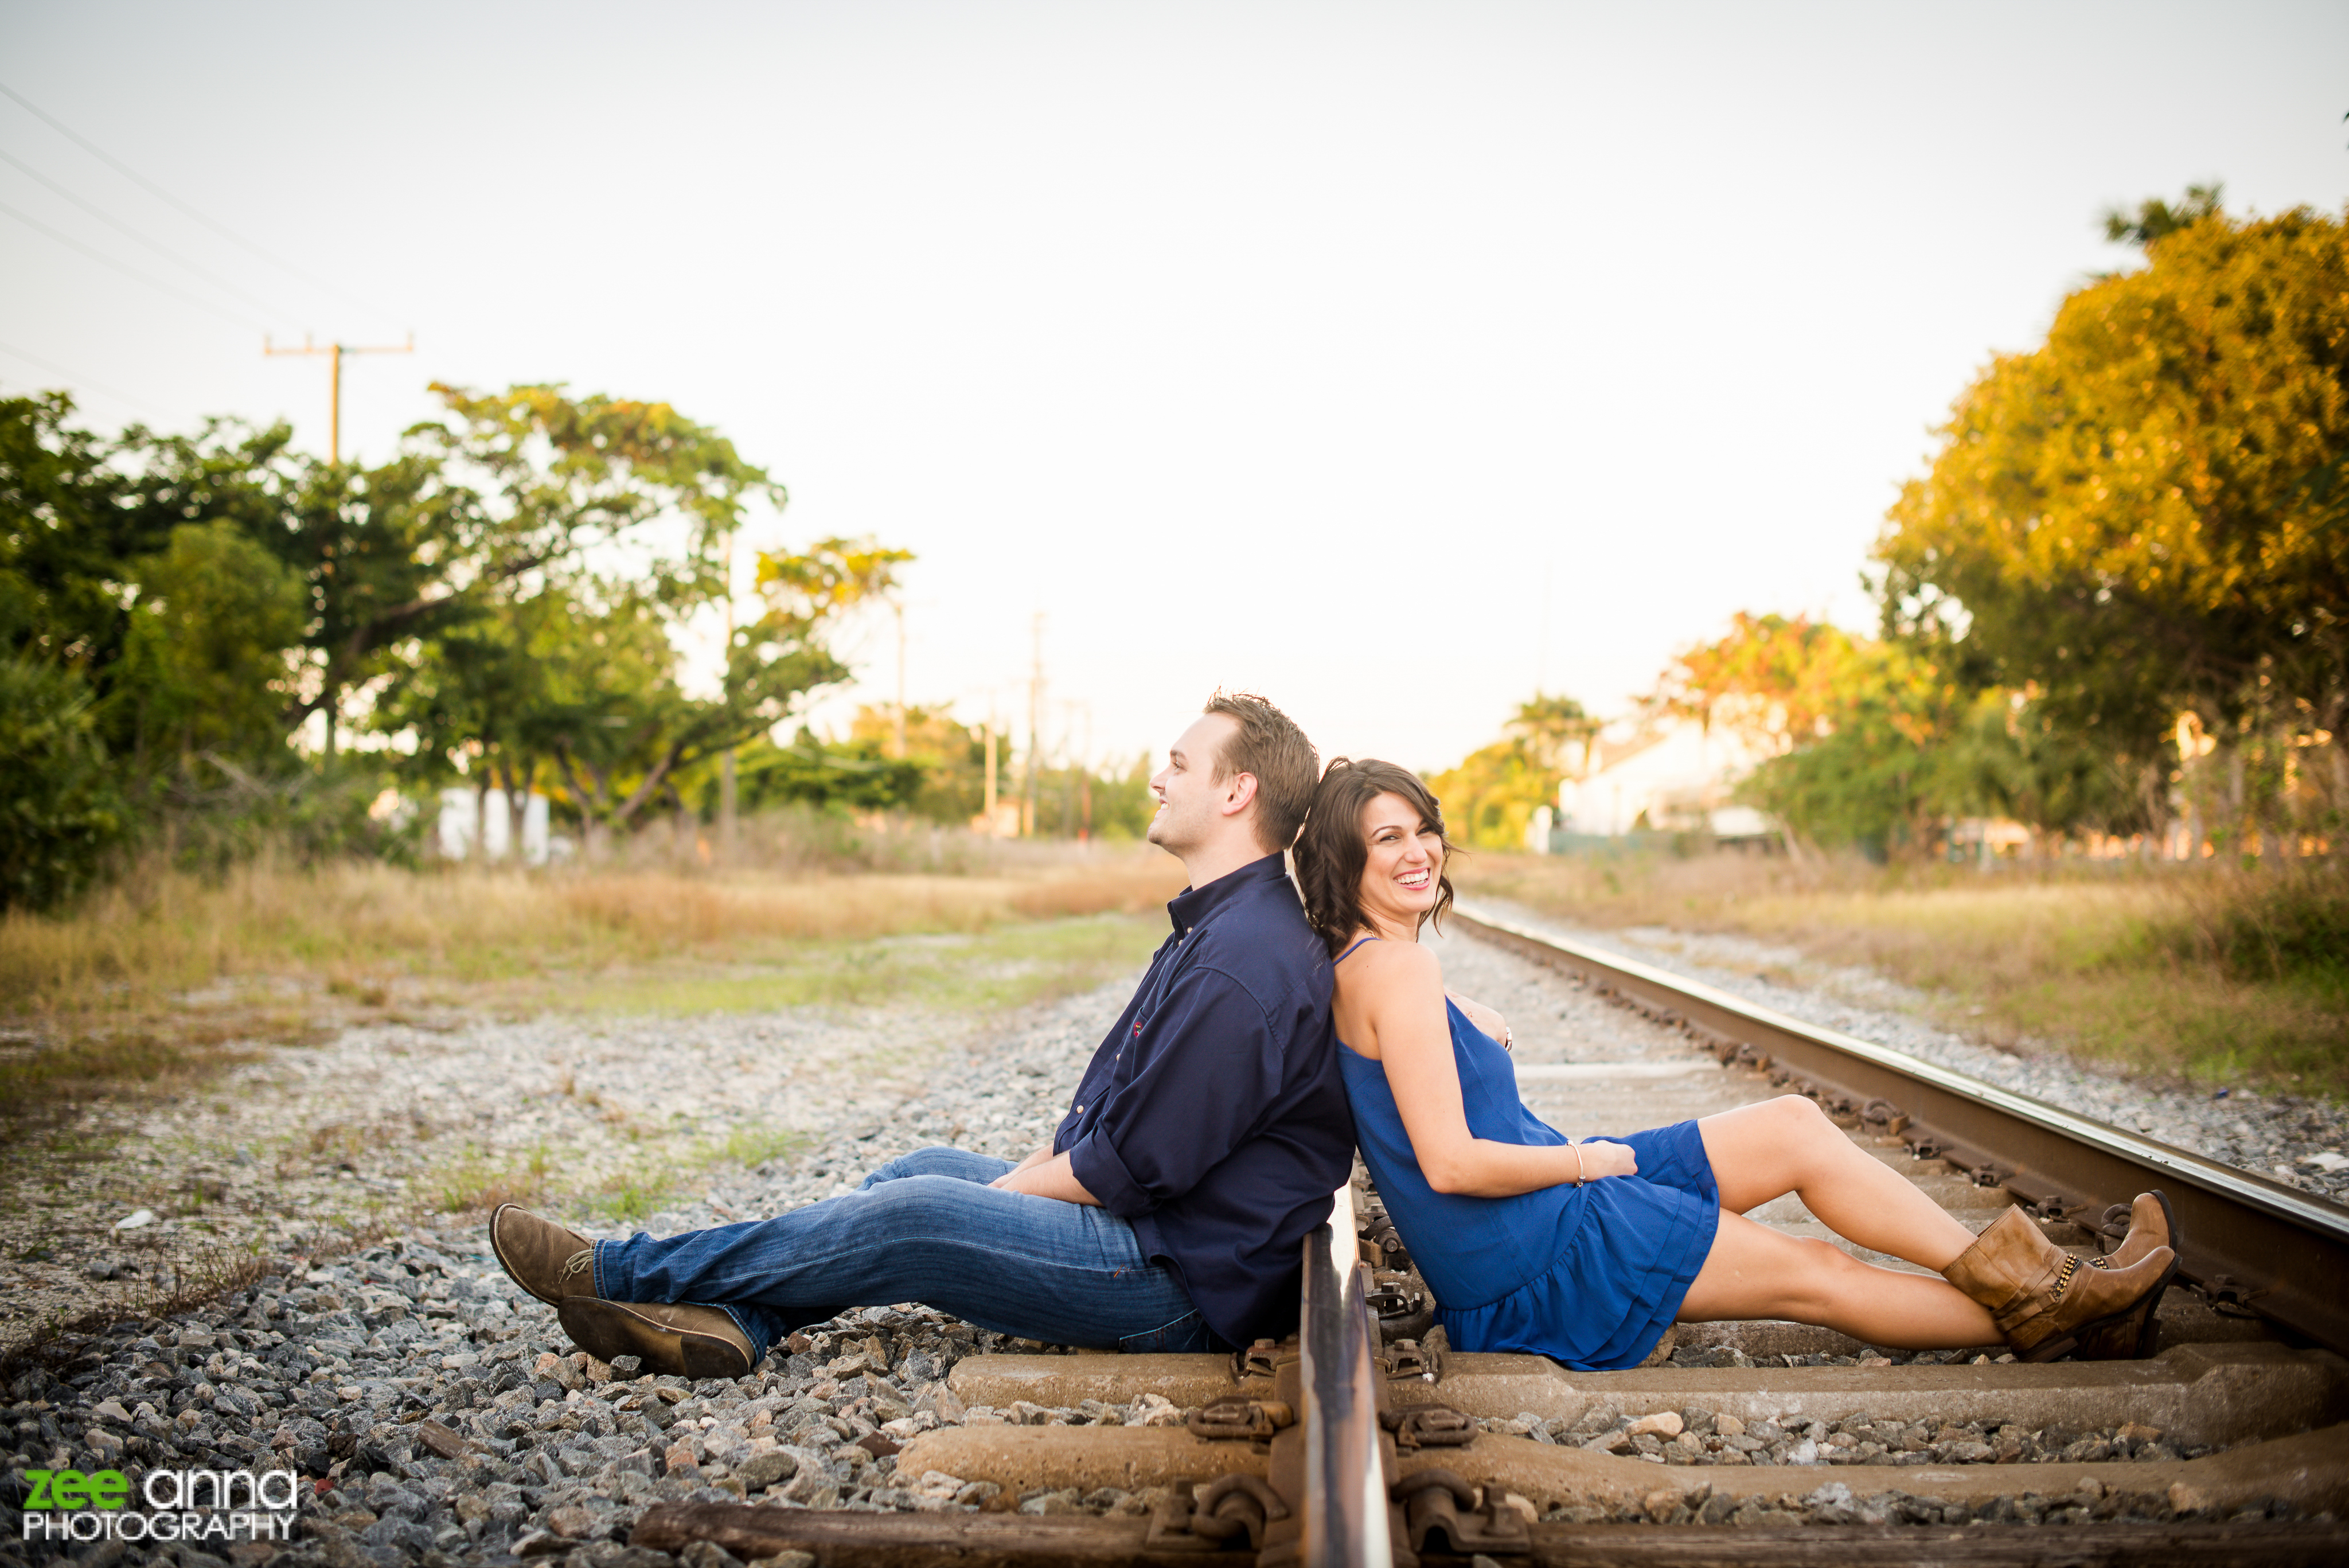 Jason+Tabitha-Engagement_01122014_127-127